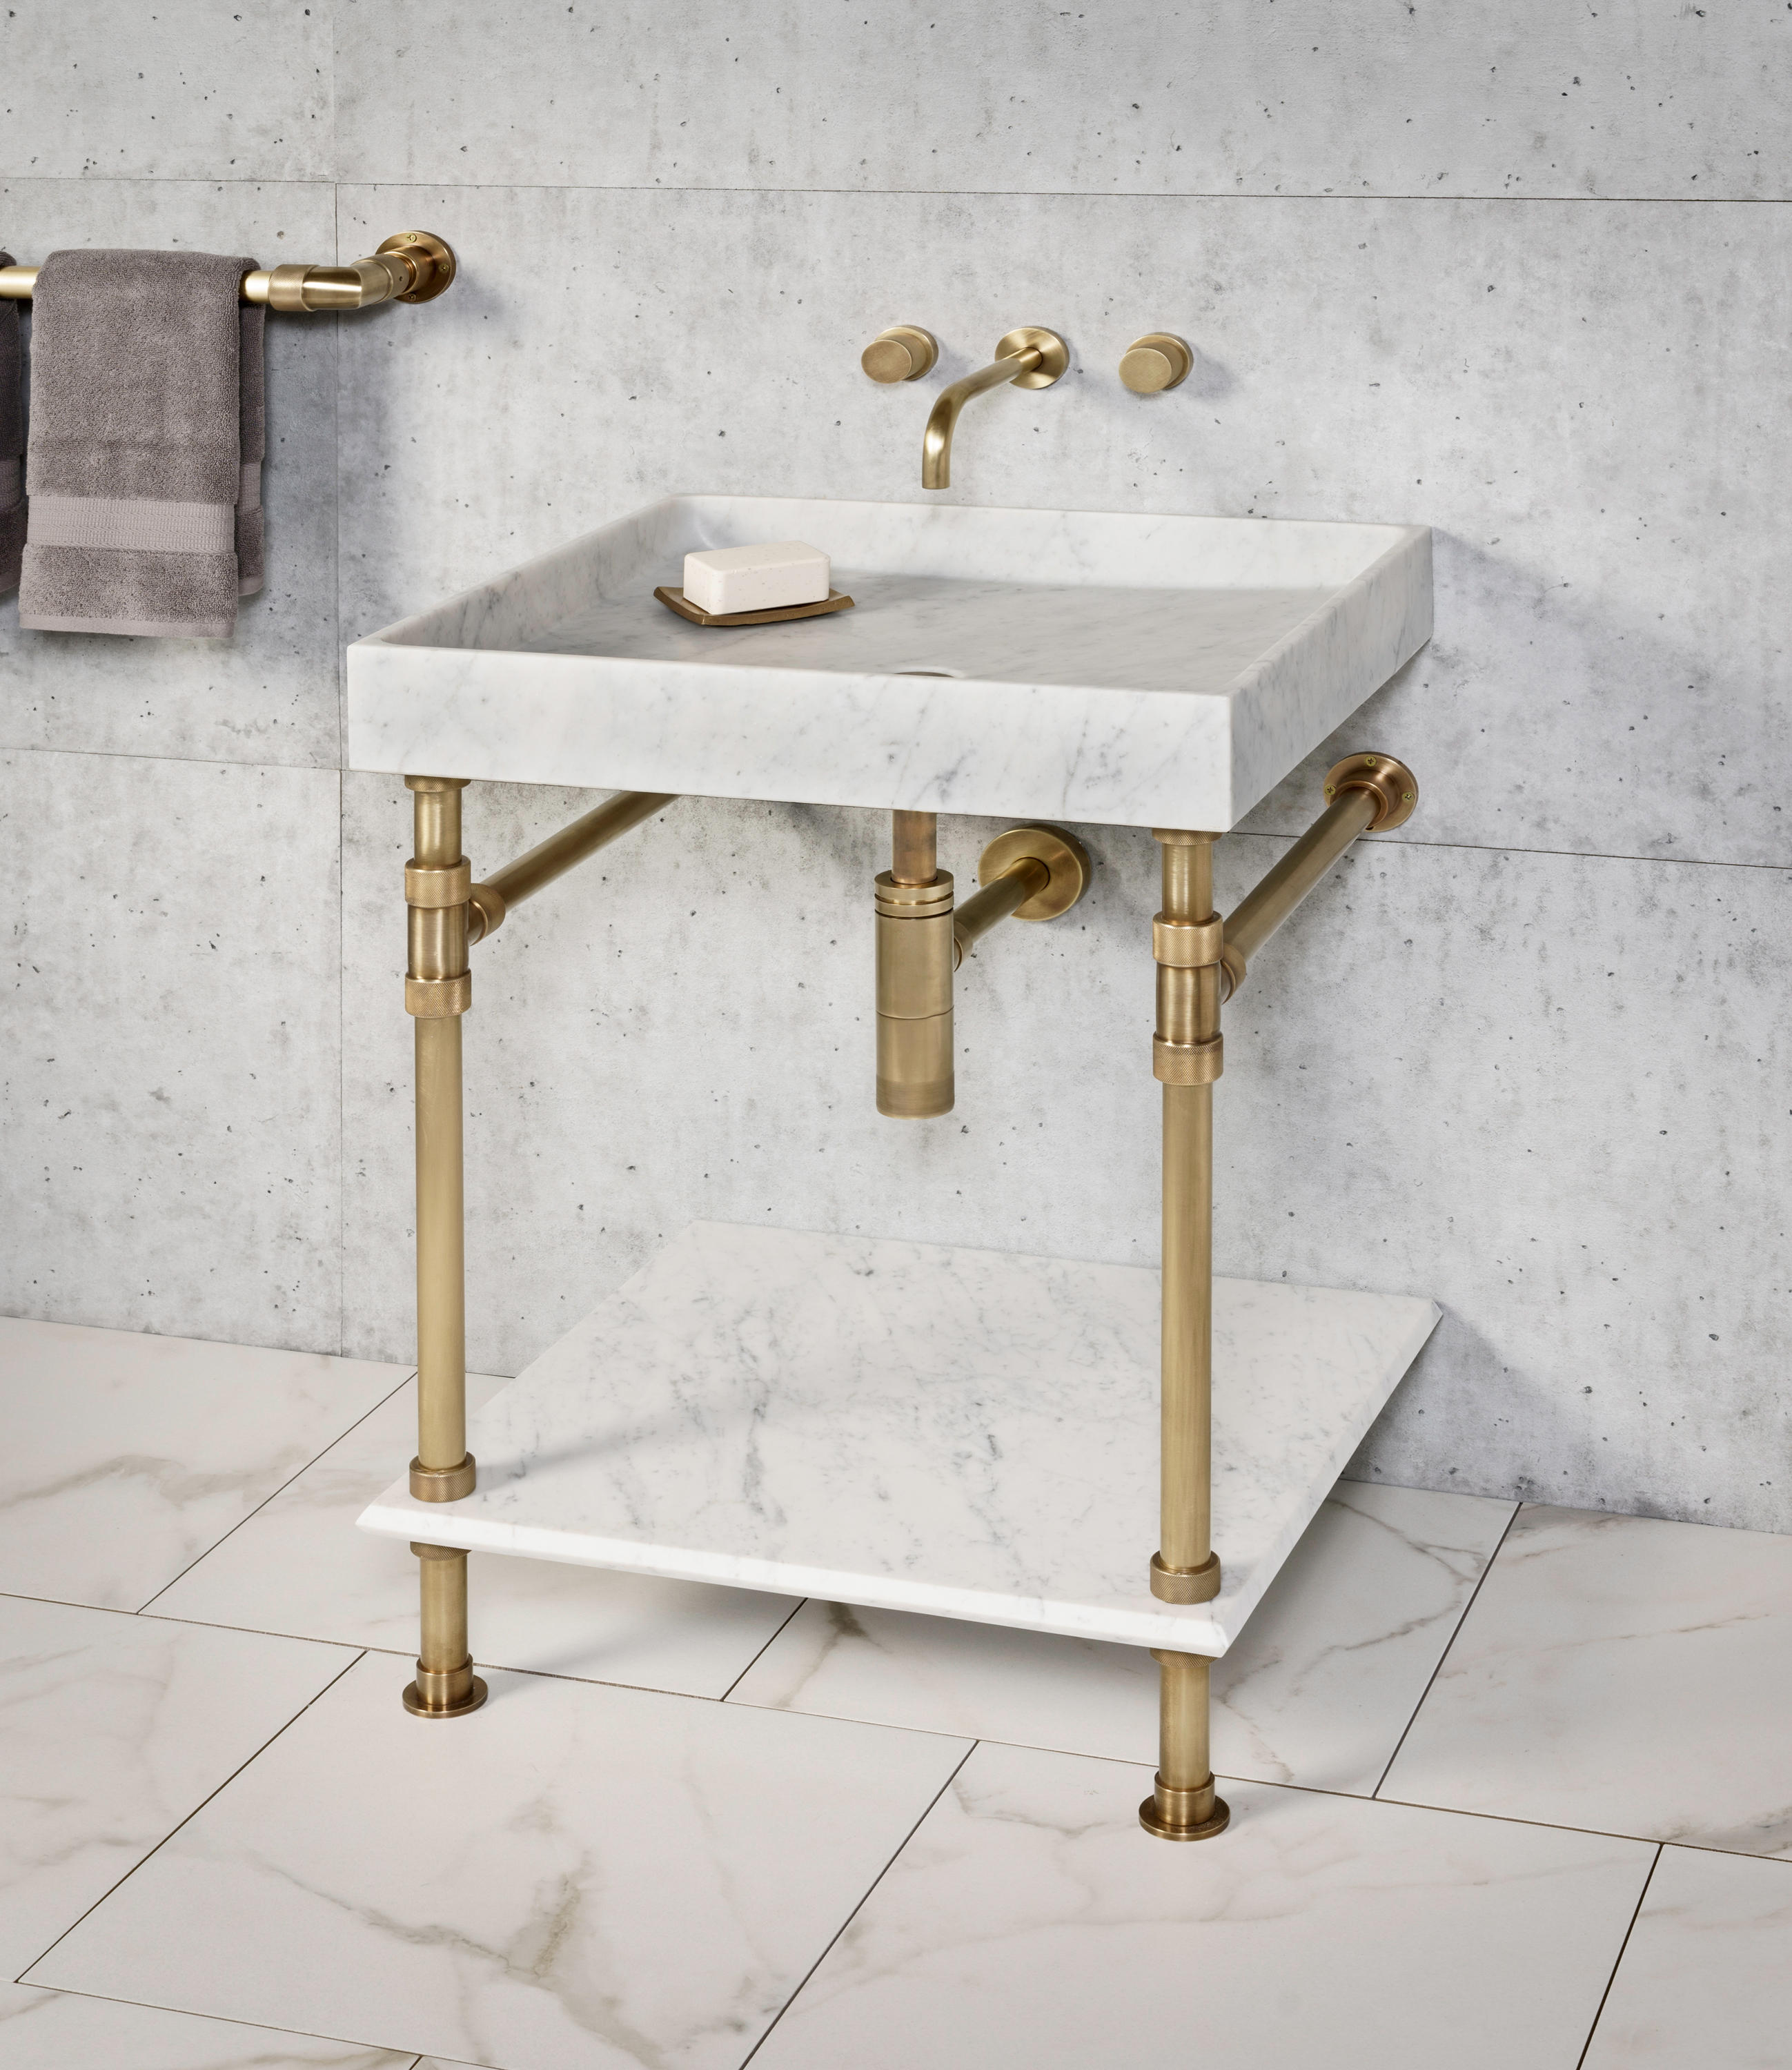 Ventus Bath Console With Metal Tray